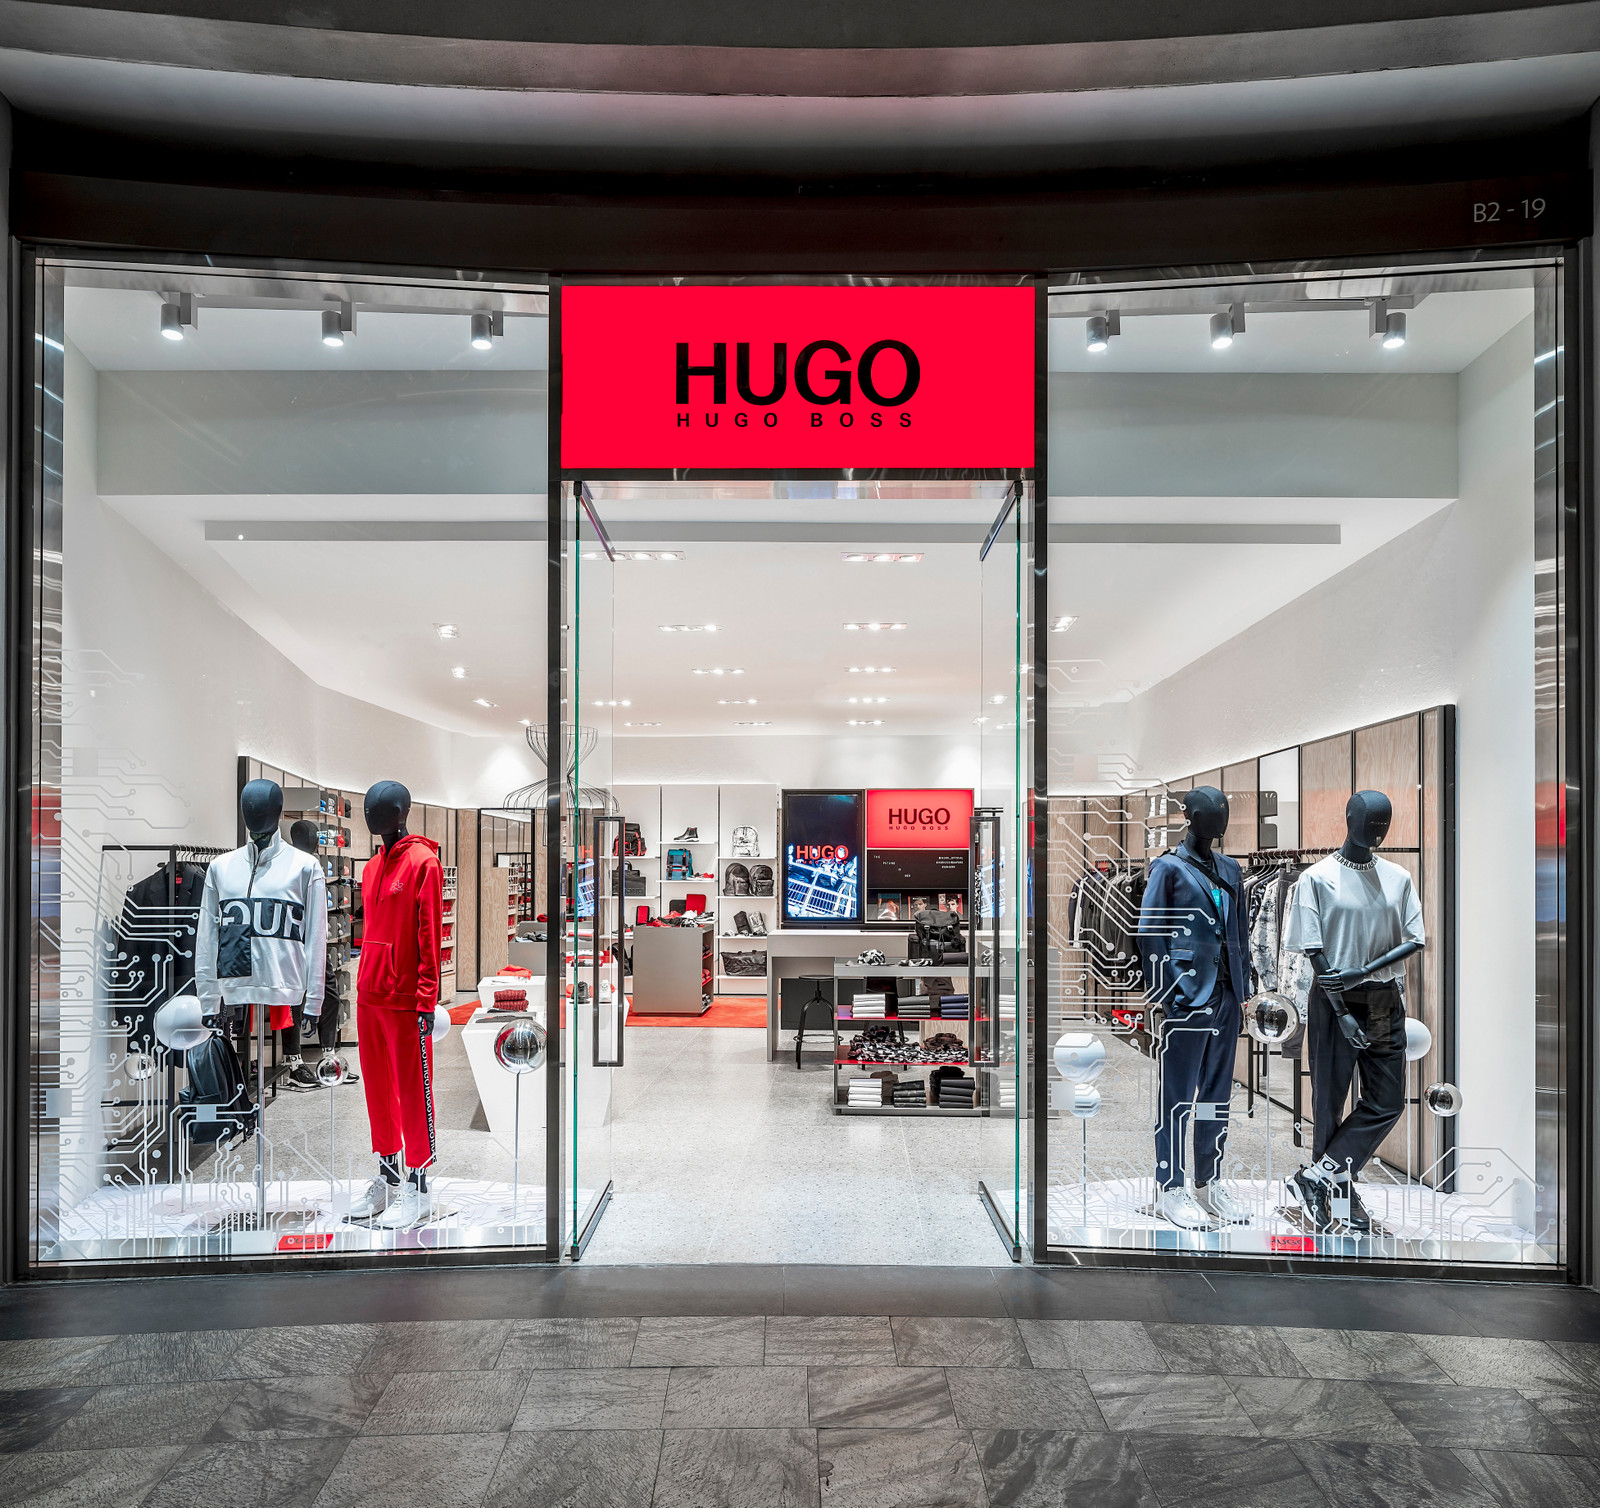 d7c7d6e15 HUGO Expands in Singapore With Second Flagship Store in Marina Bay Sands